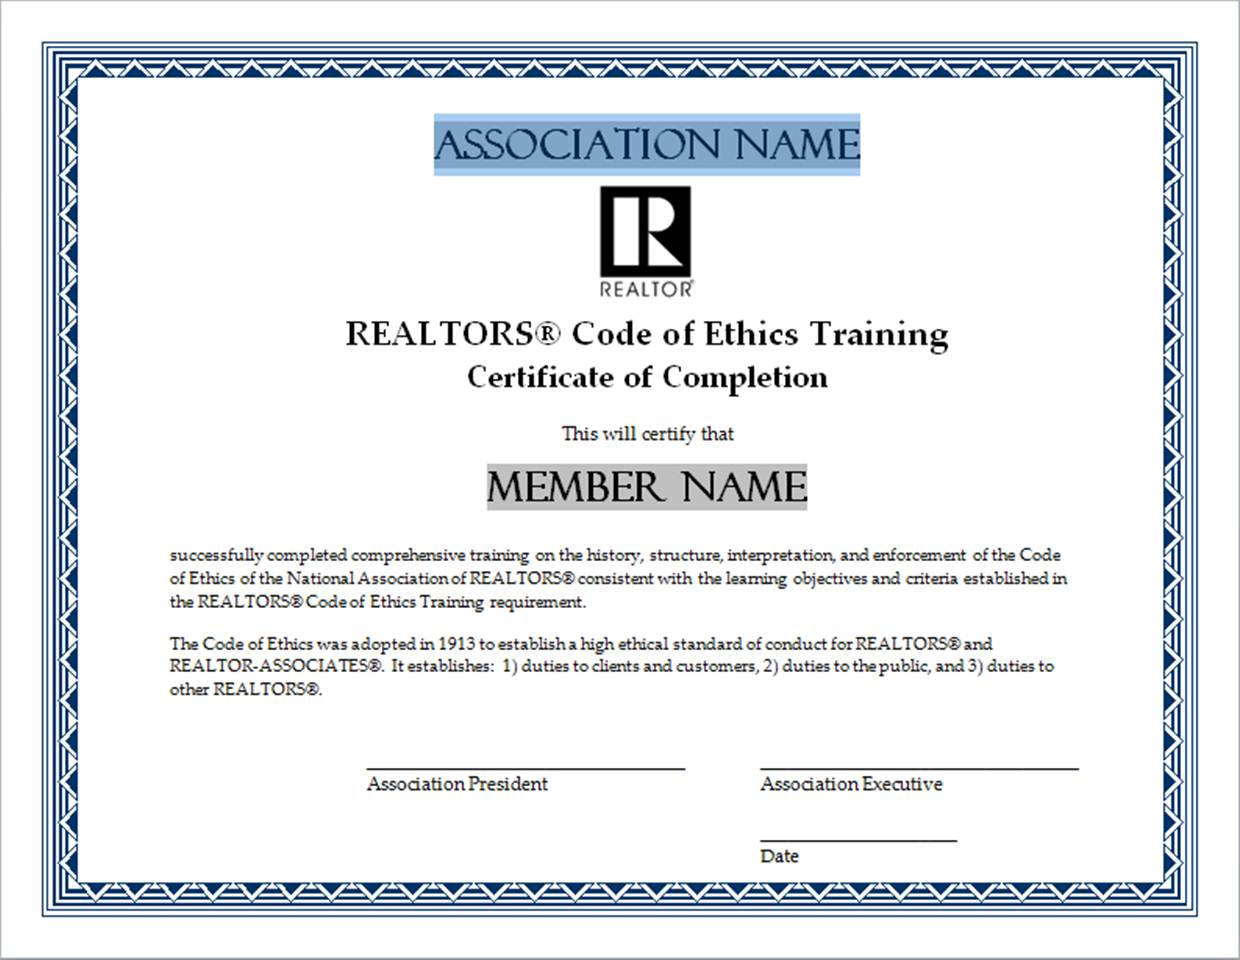 Code of ethics training certificates naraltor certificate 2 xflitez Gallery